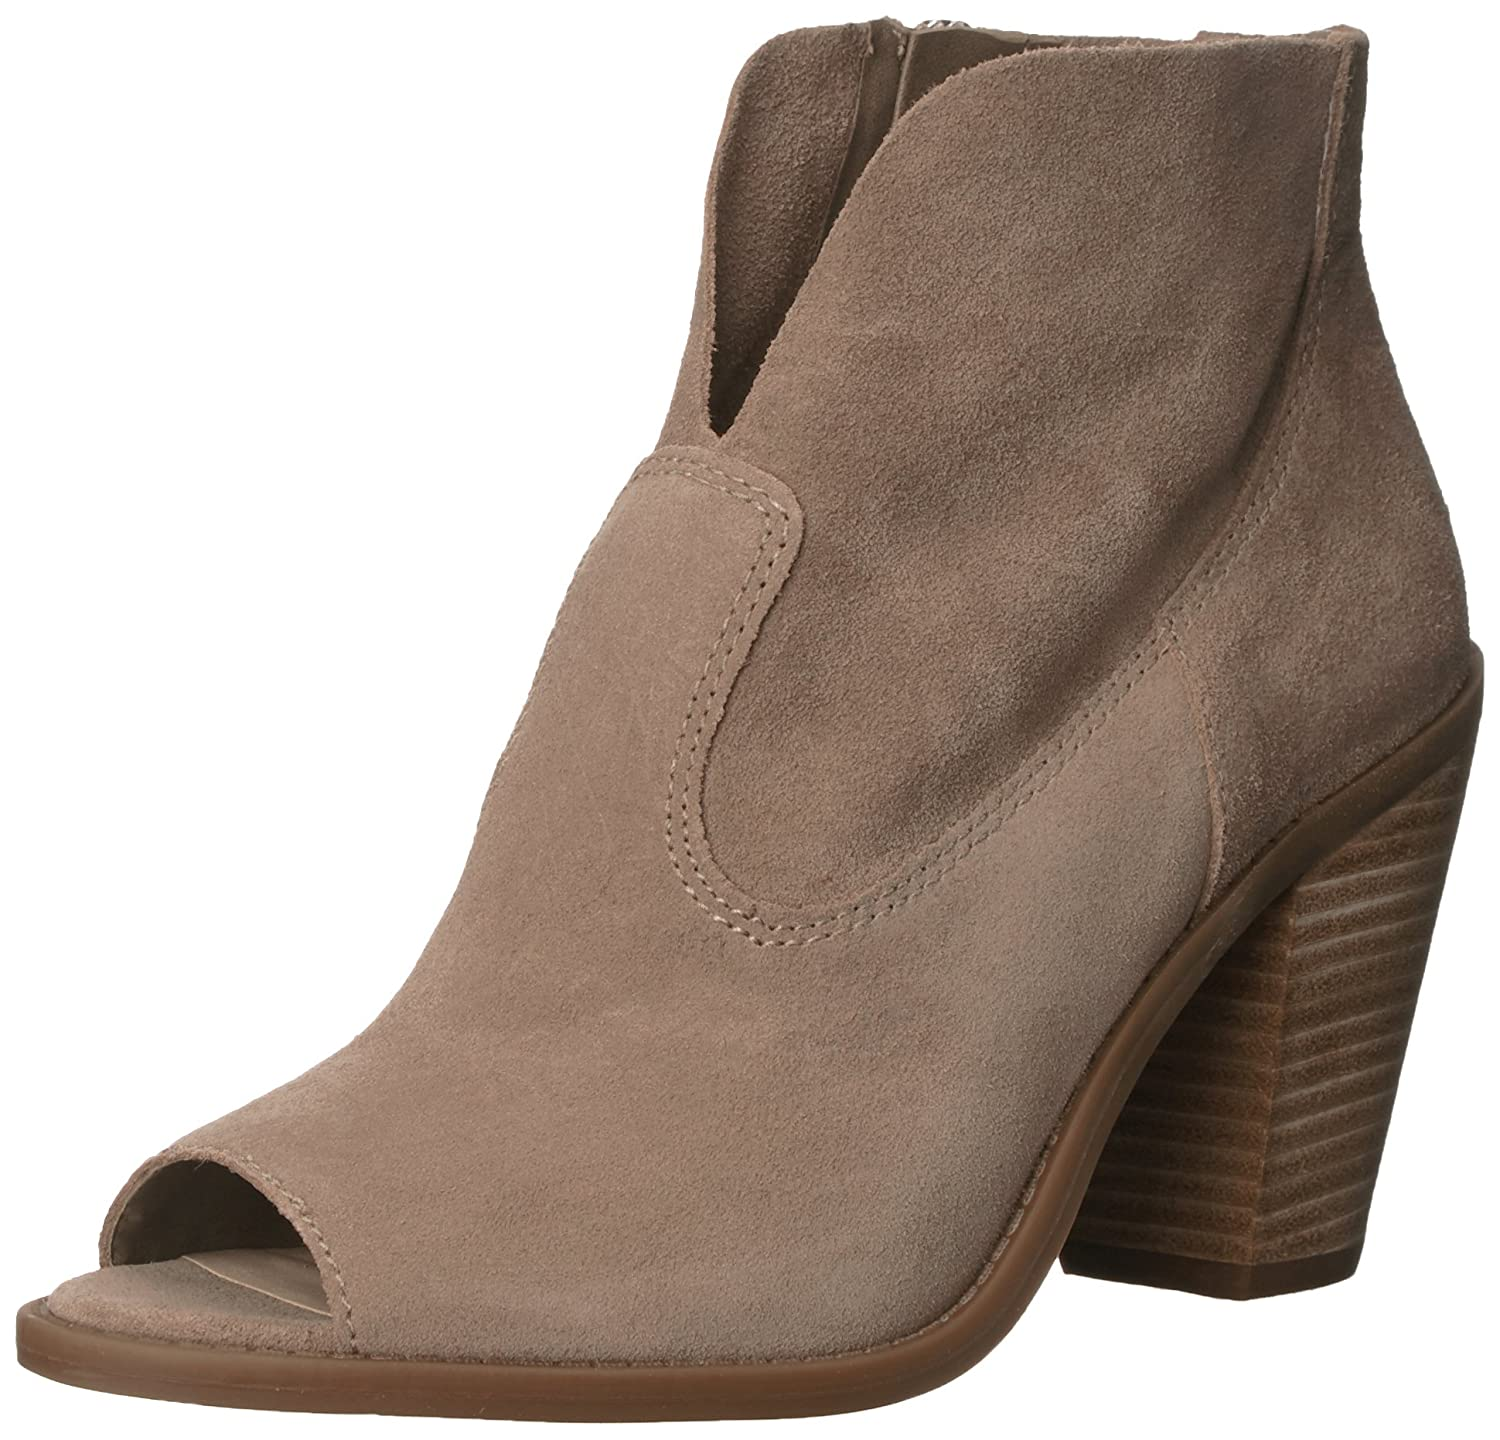 Jessica Simpson Women's Chalotte Ankle Bootie B01GH8RD58 10 B(M) US|Slater Taupe